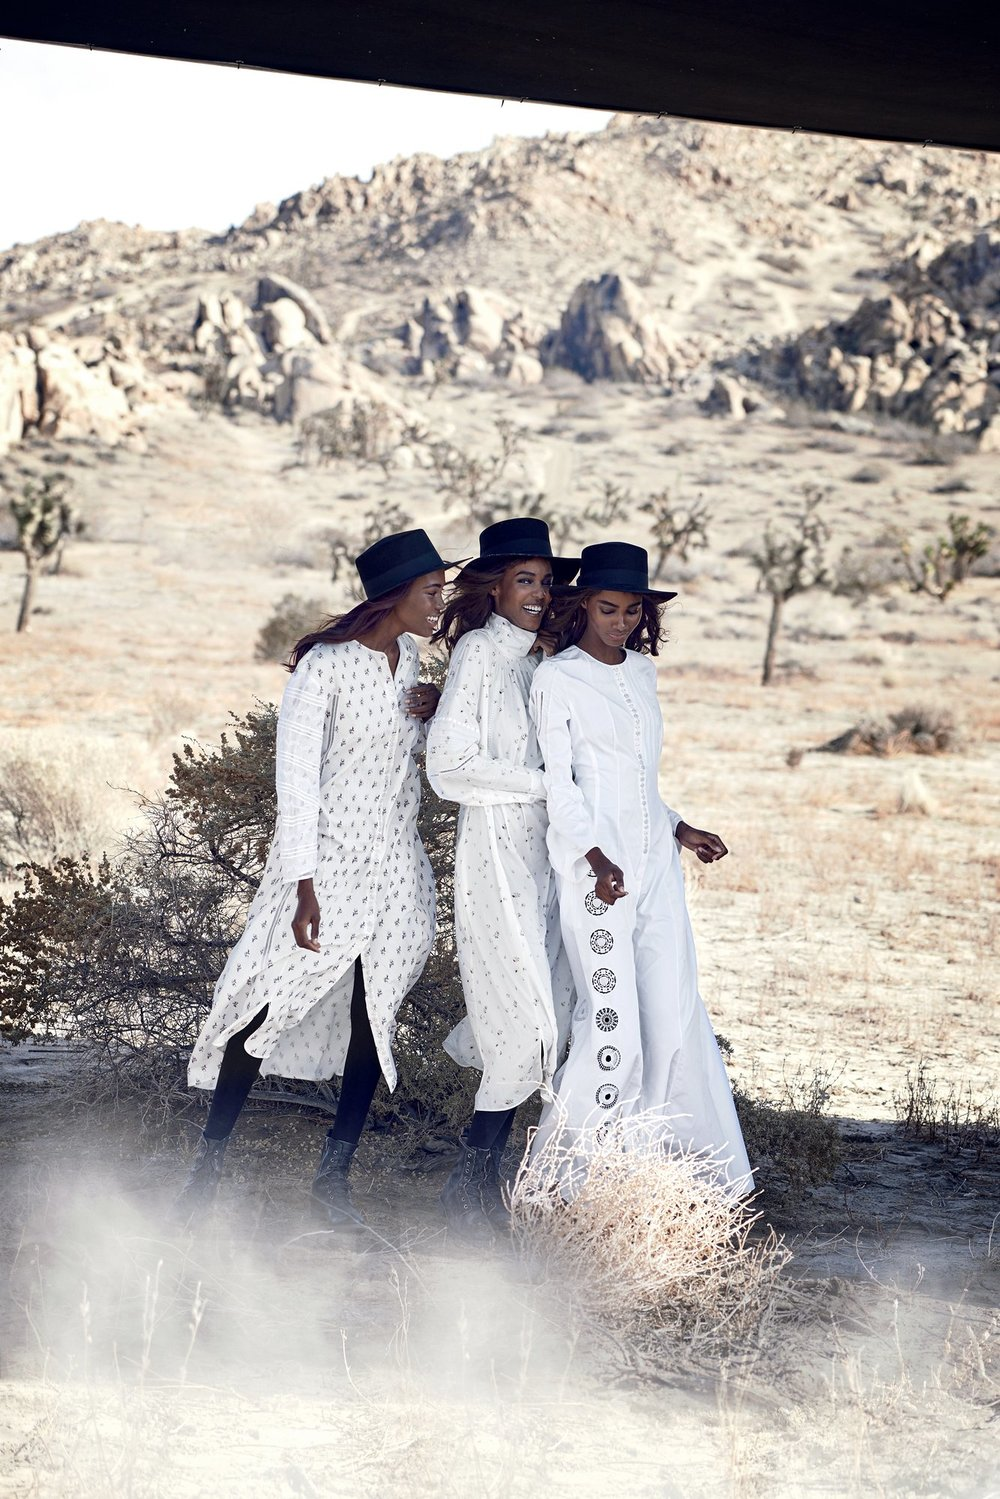 Kai Newman,Leila Nda,and Tami Williams,all in Christian Dior dresses